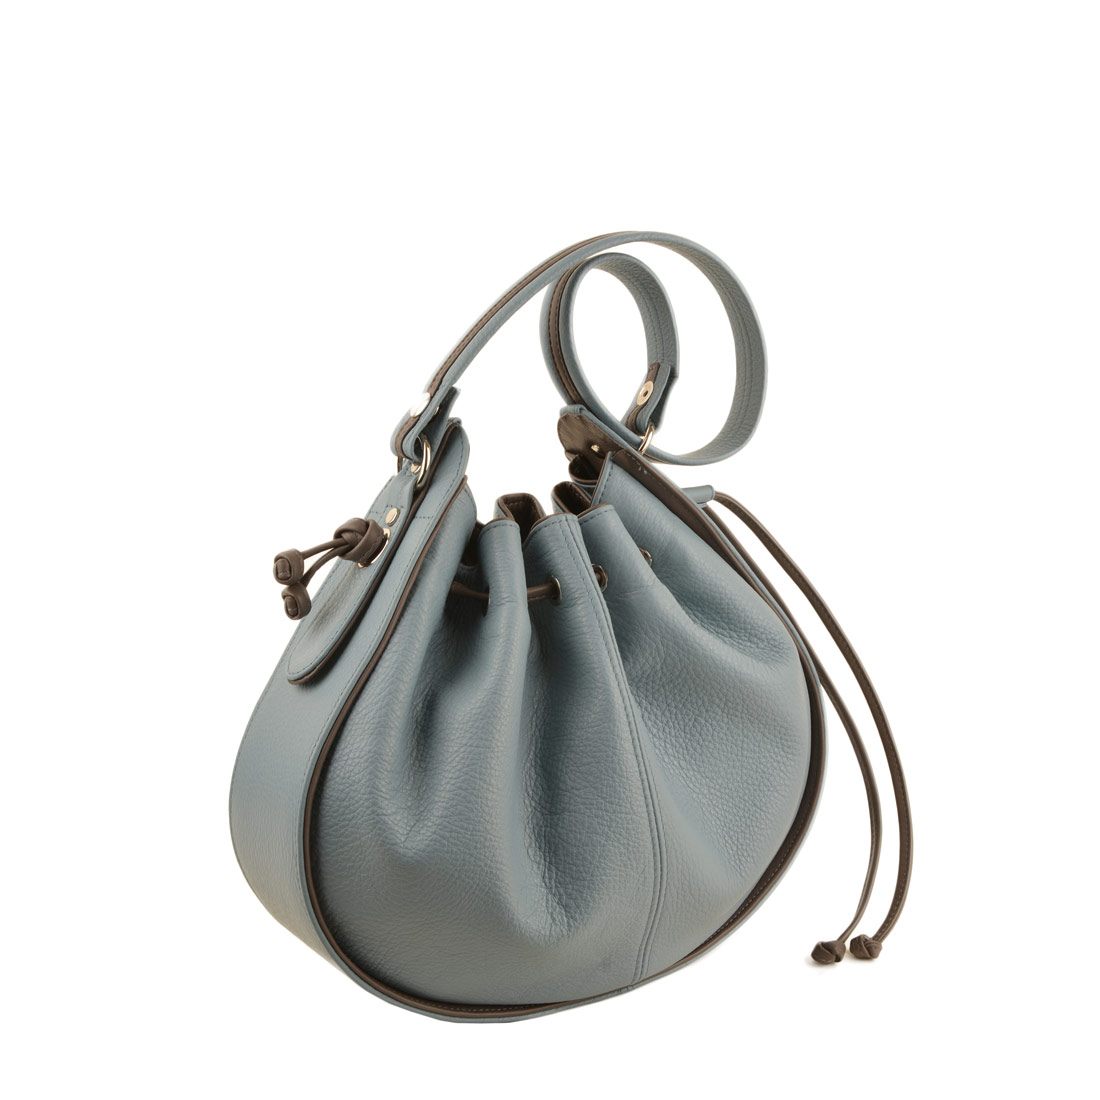 Daisy Niagra Taupe Leather Shoulder Bag